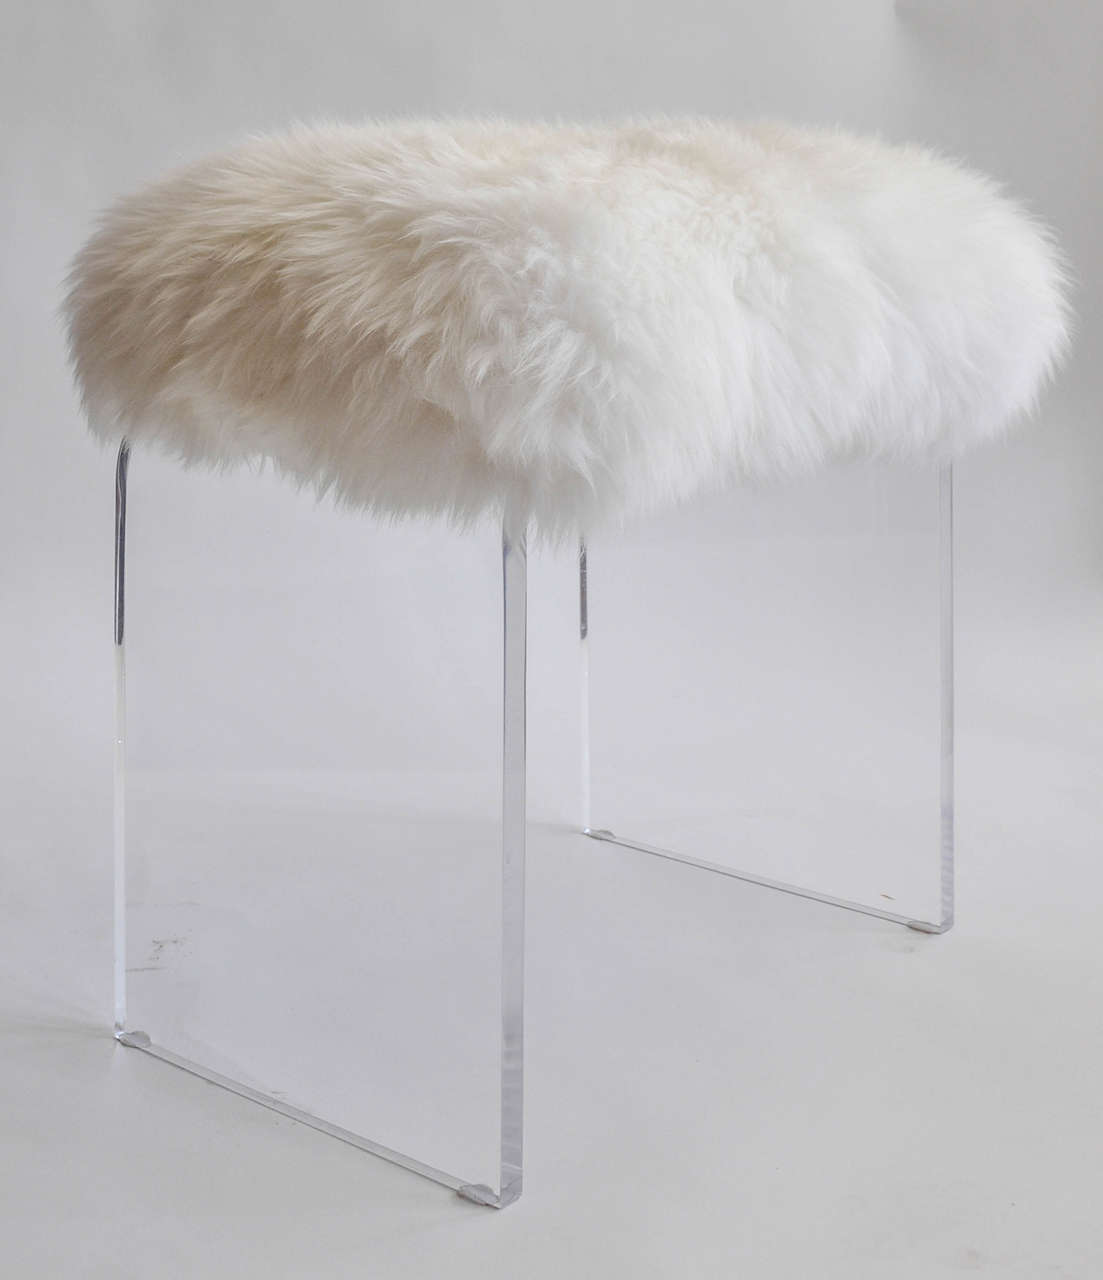 vanity chair white fur little tikes swivel vintage lucite stool with faux topper at 1stdibs